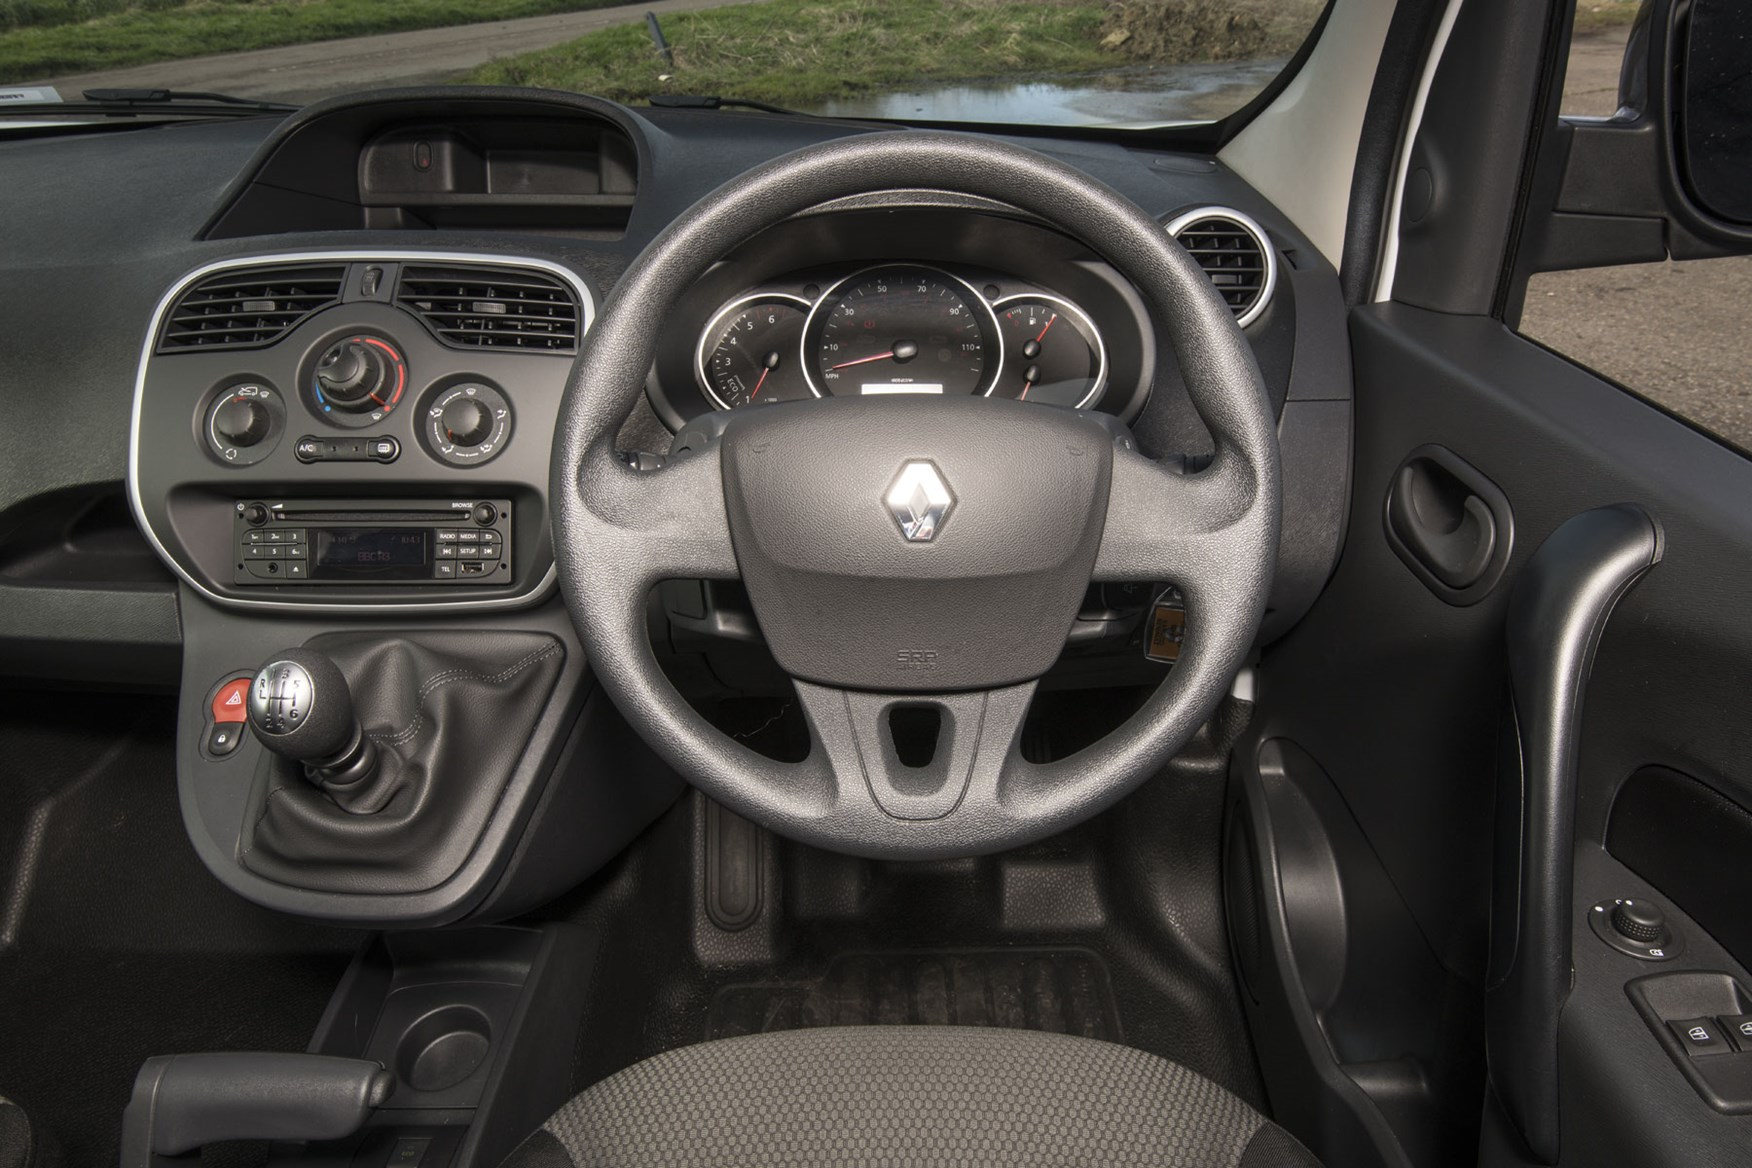 Renault Kangoo van review - steering wheel, instrument cluster, gearbox